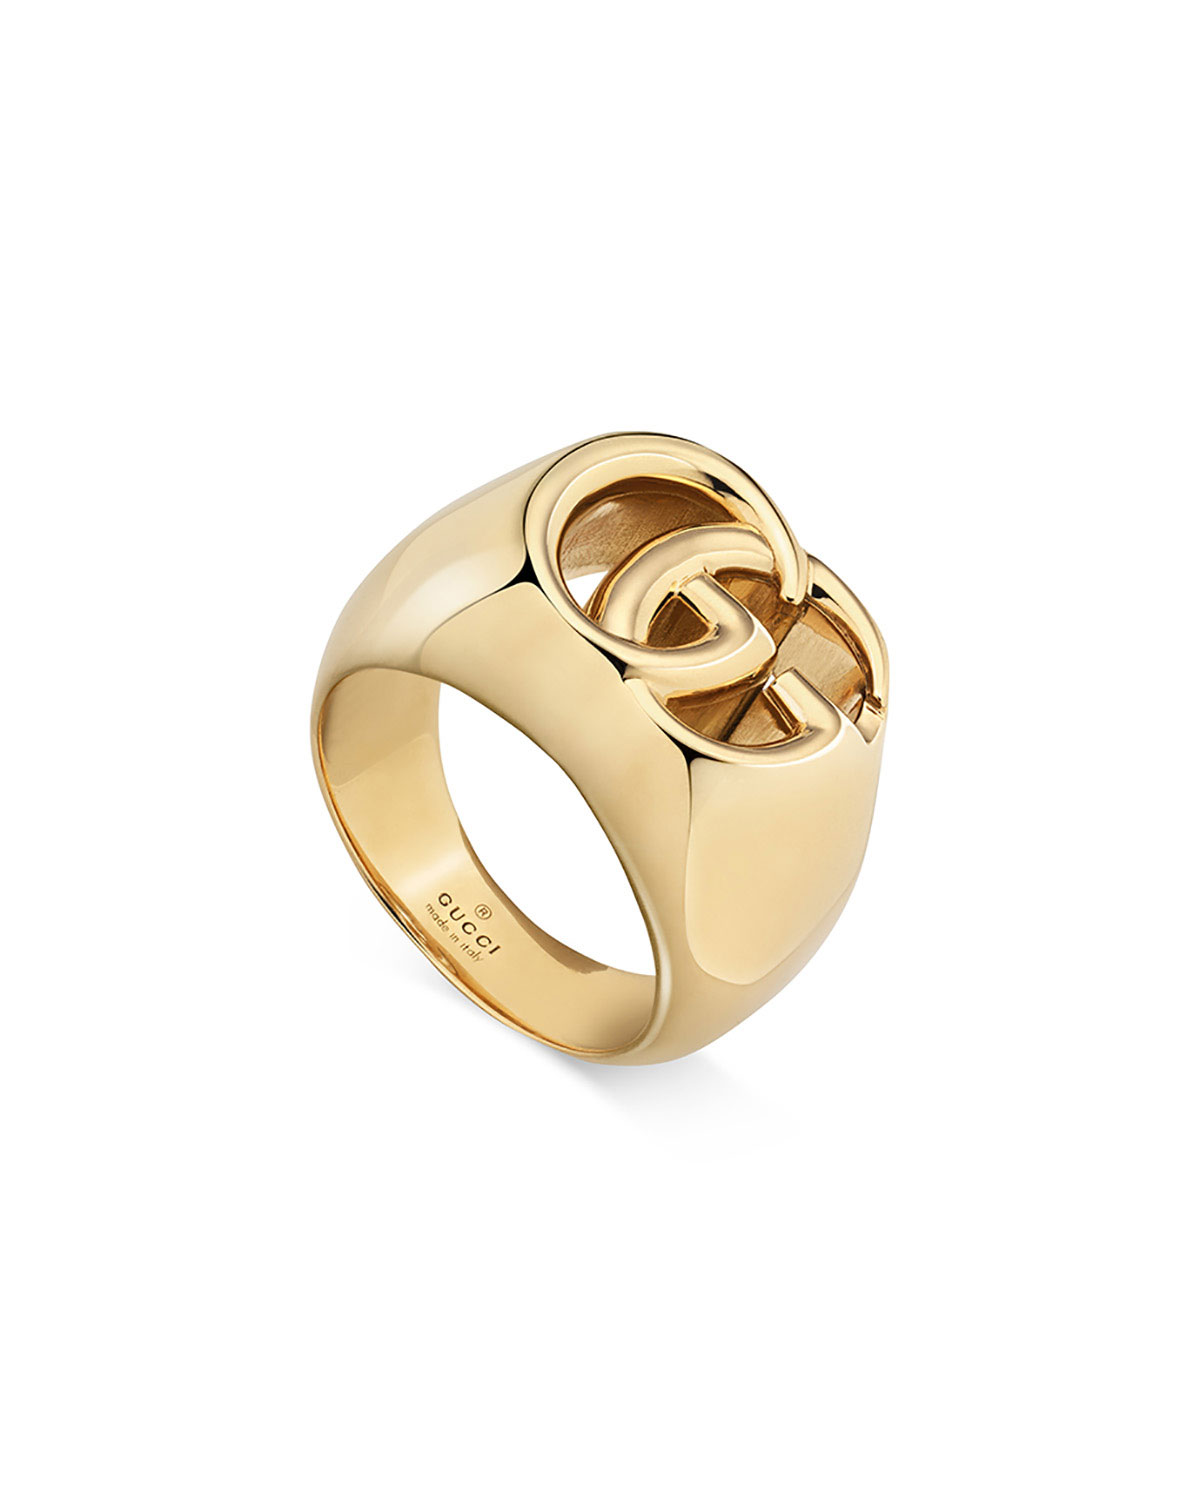 0423f988decbeb GucciMen's 18k Gold GG Running Ring, Size 10.5